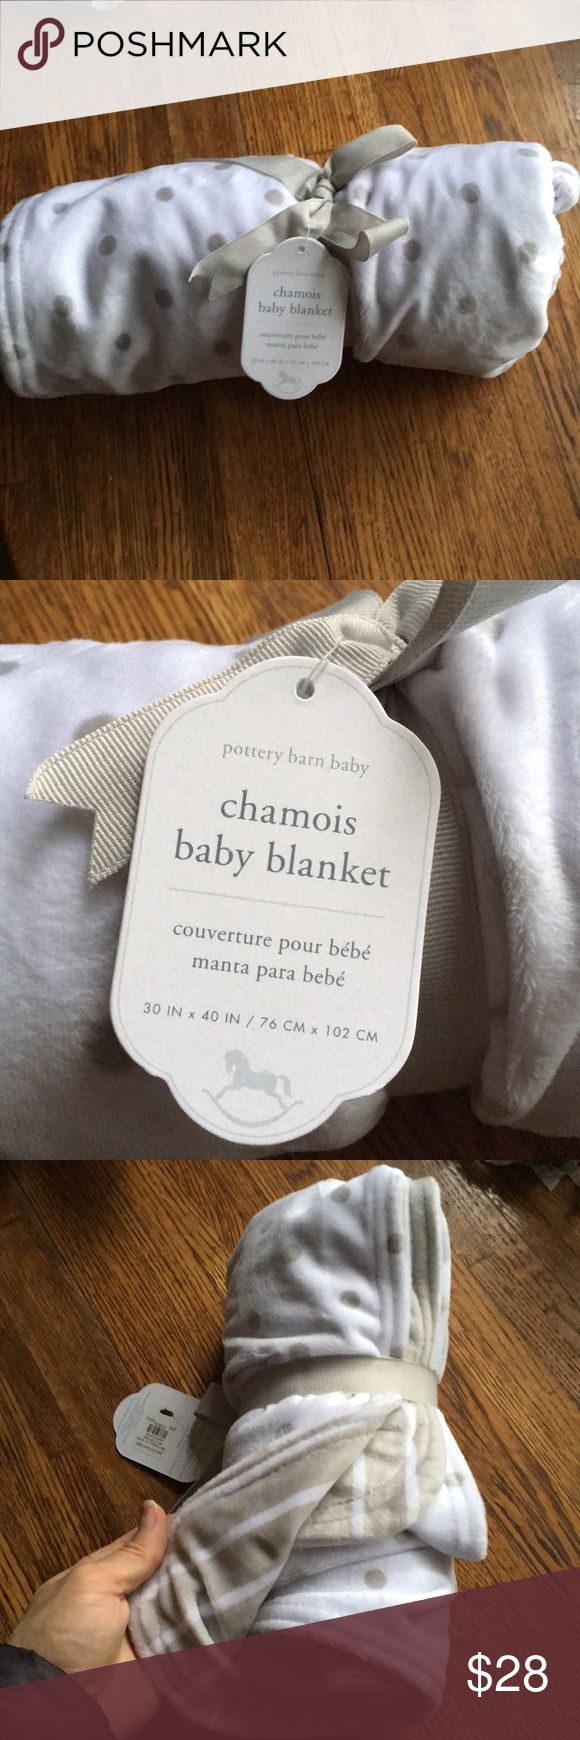 Baby Chamois Blanket by Pottery Barn Kids New with tags